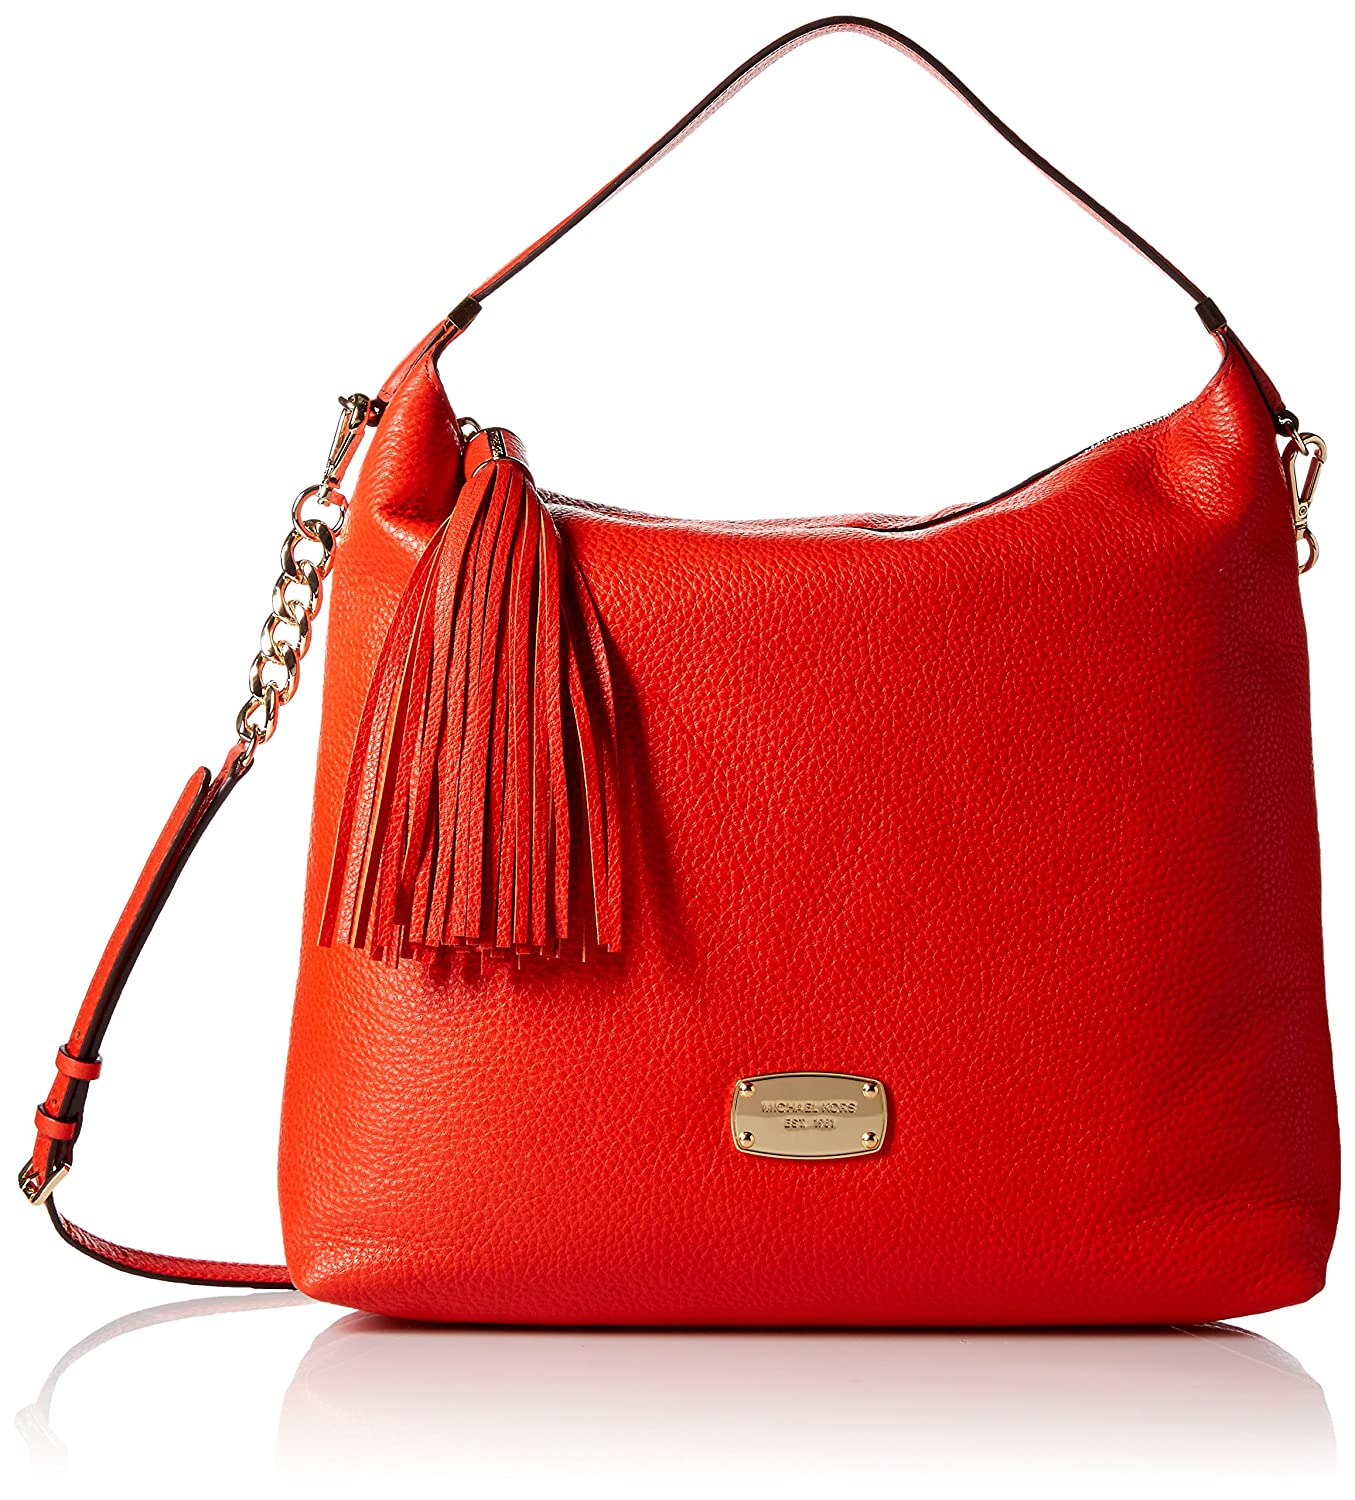 9f50e52ee48a0 Michael Kors Bedford Large Mandarin Orange Leather Top Zip Shoulder Bag   Handbags  Amazon.com